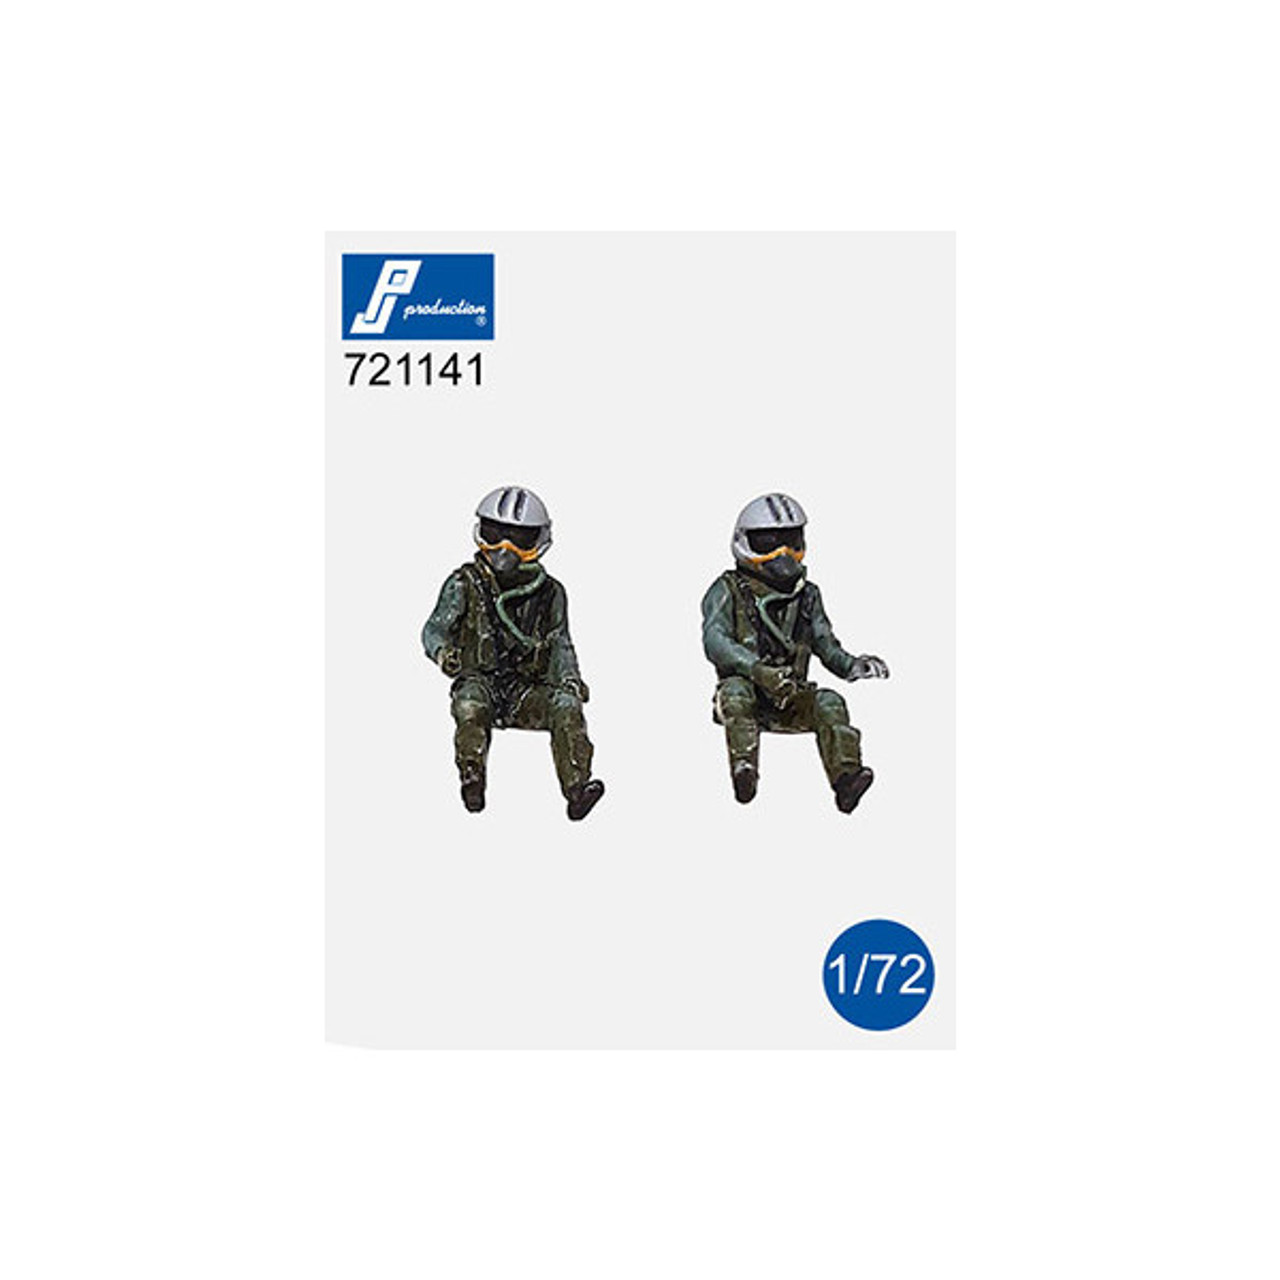 PJ Productions 2x Rafael Pilots Seated in aircraft  Figures 1:72